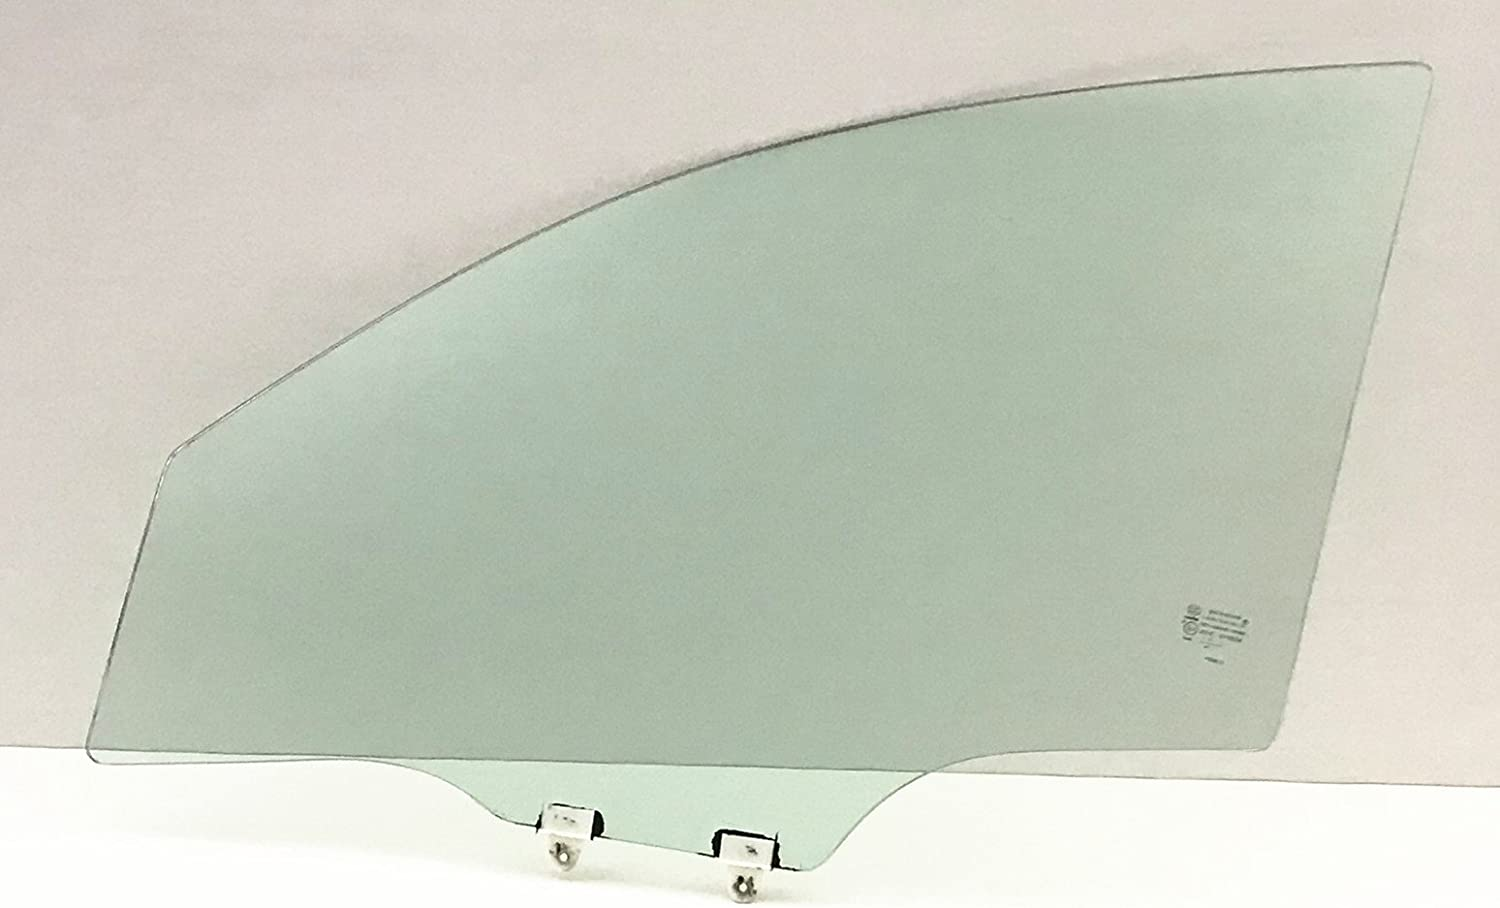 NAGD Laminated Driver Left Side Window Glass Front Com Selling Max 79% OFF rankings Door